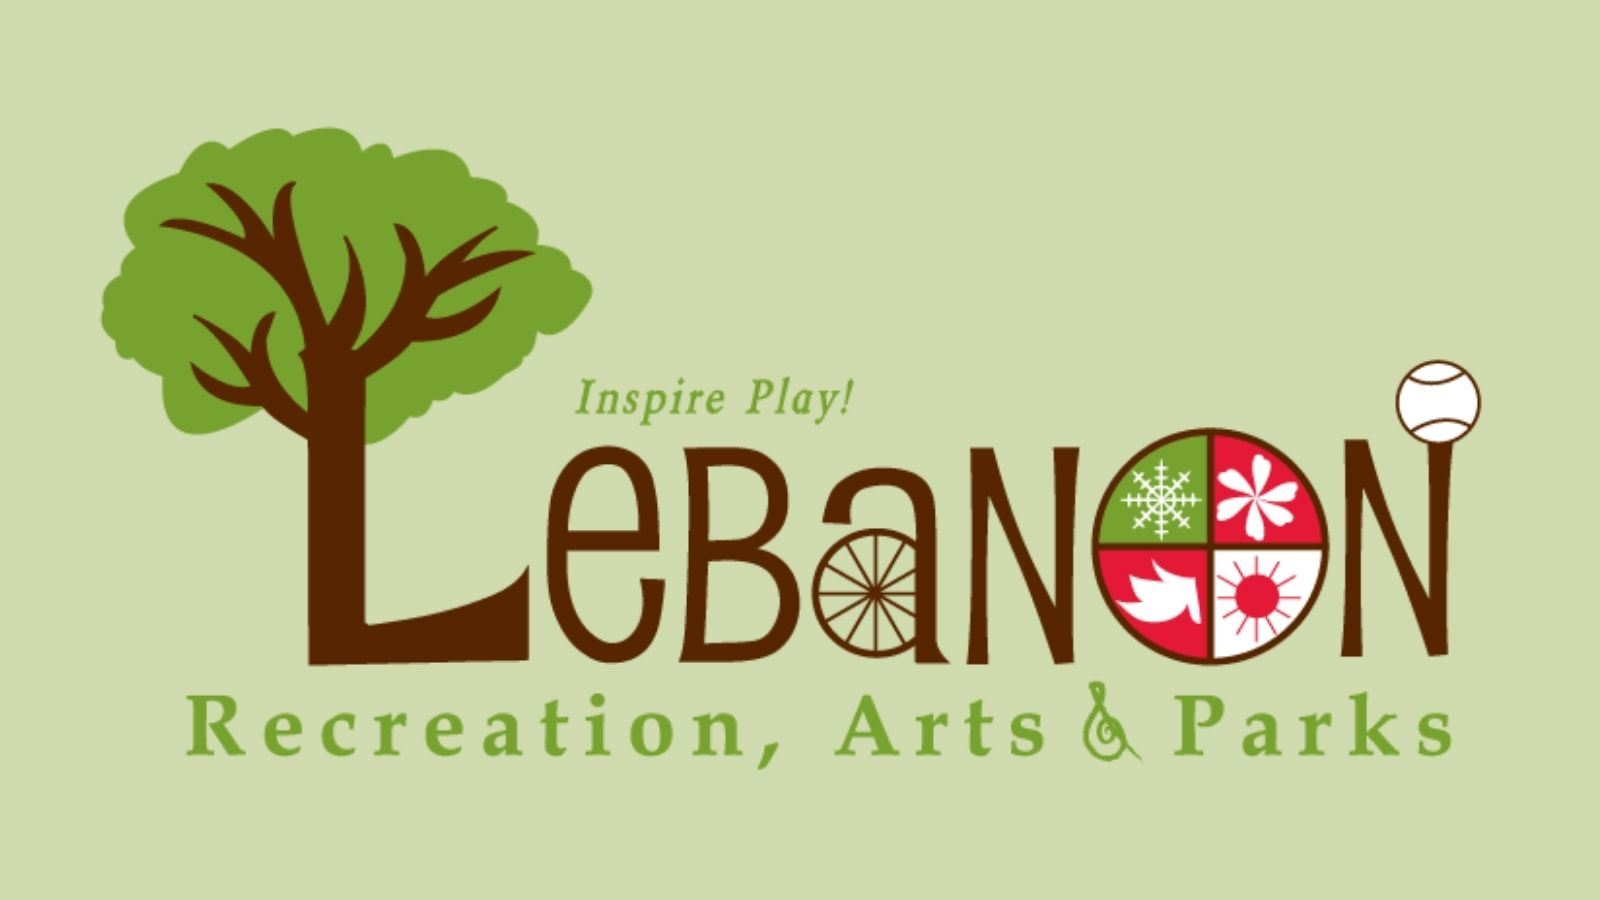 Lebanon Recreation, Arts, and Parks New Logo